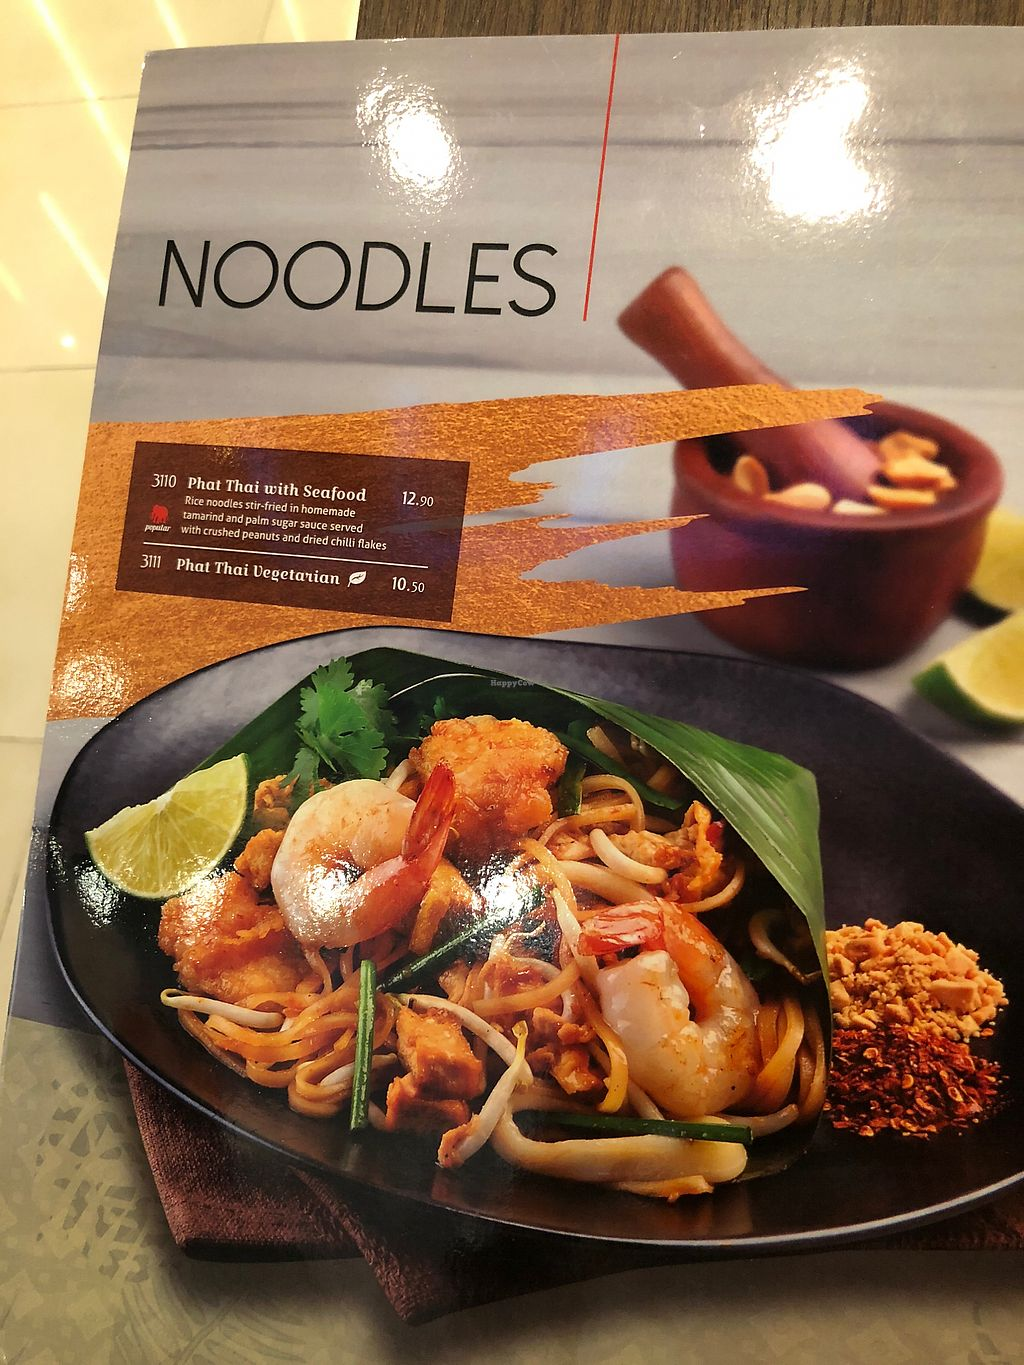 """Photo of ThaiExpress  by <a href=""""/members/profile/Starmone"""">Starmone</a> <br/>Veg options <br/> March 18, 2018  - <a href='/contact/abuse/image/113637/372304'>Report</a>"""